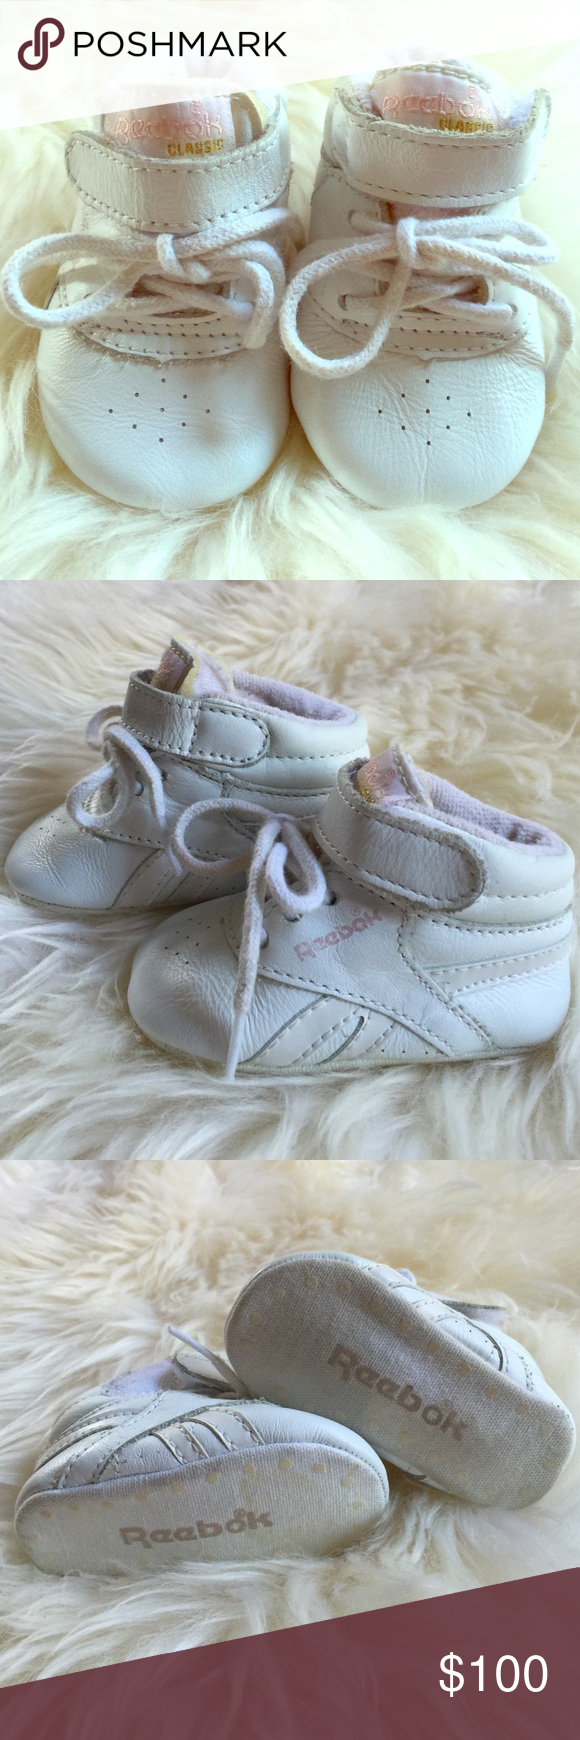 Reebok Classic Infant Girl Size 1 Baby Sneakers *MINT condition vintage white leather baby girl running shoes. What an incredible gift! These are in the novelty collectors category! For a lucky little girl! Reebok Shoes Sneakers